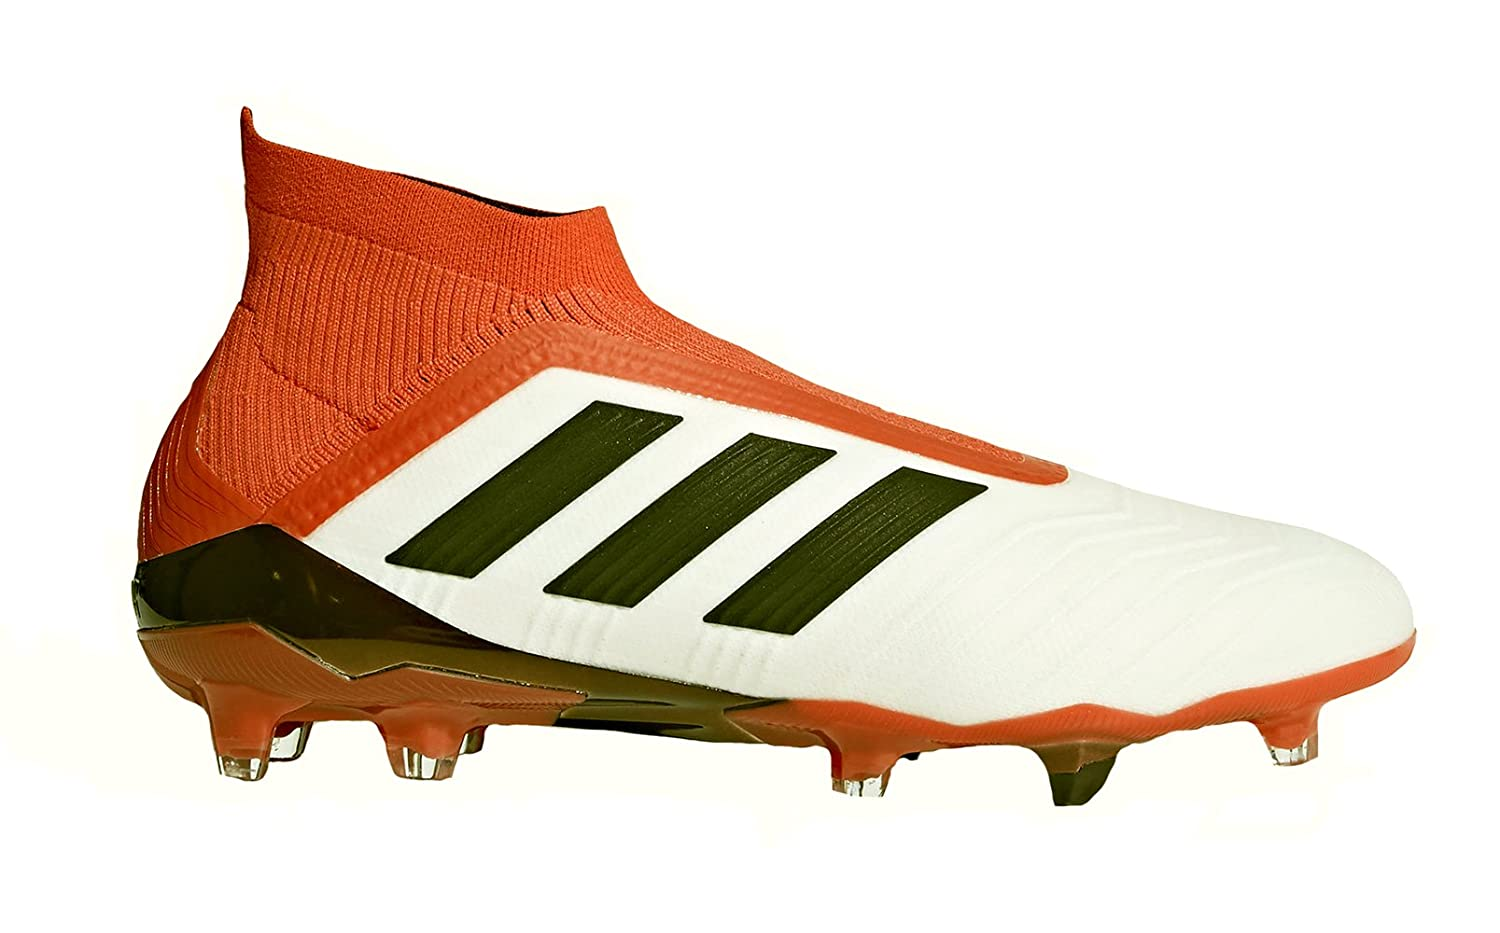 online retailer c354e 4a906 Amazon.com  adidas Predator 18+ Firm Ground Cleats FTWWHT (8.5)  Soccer